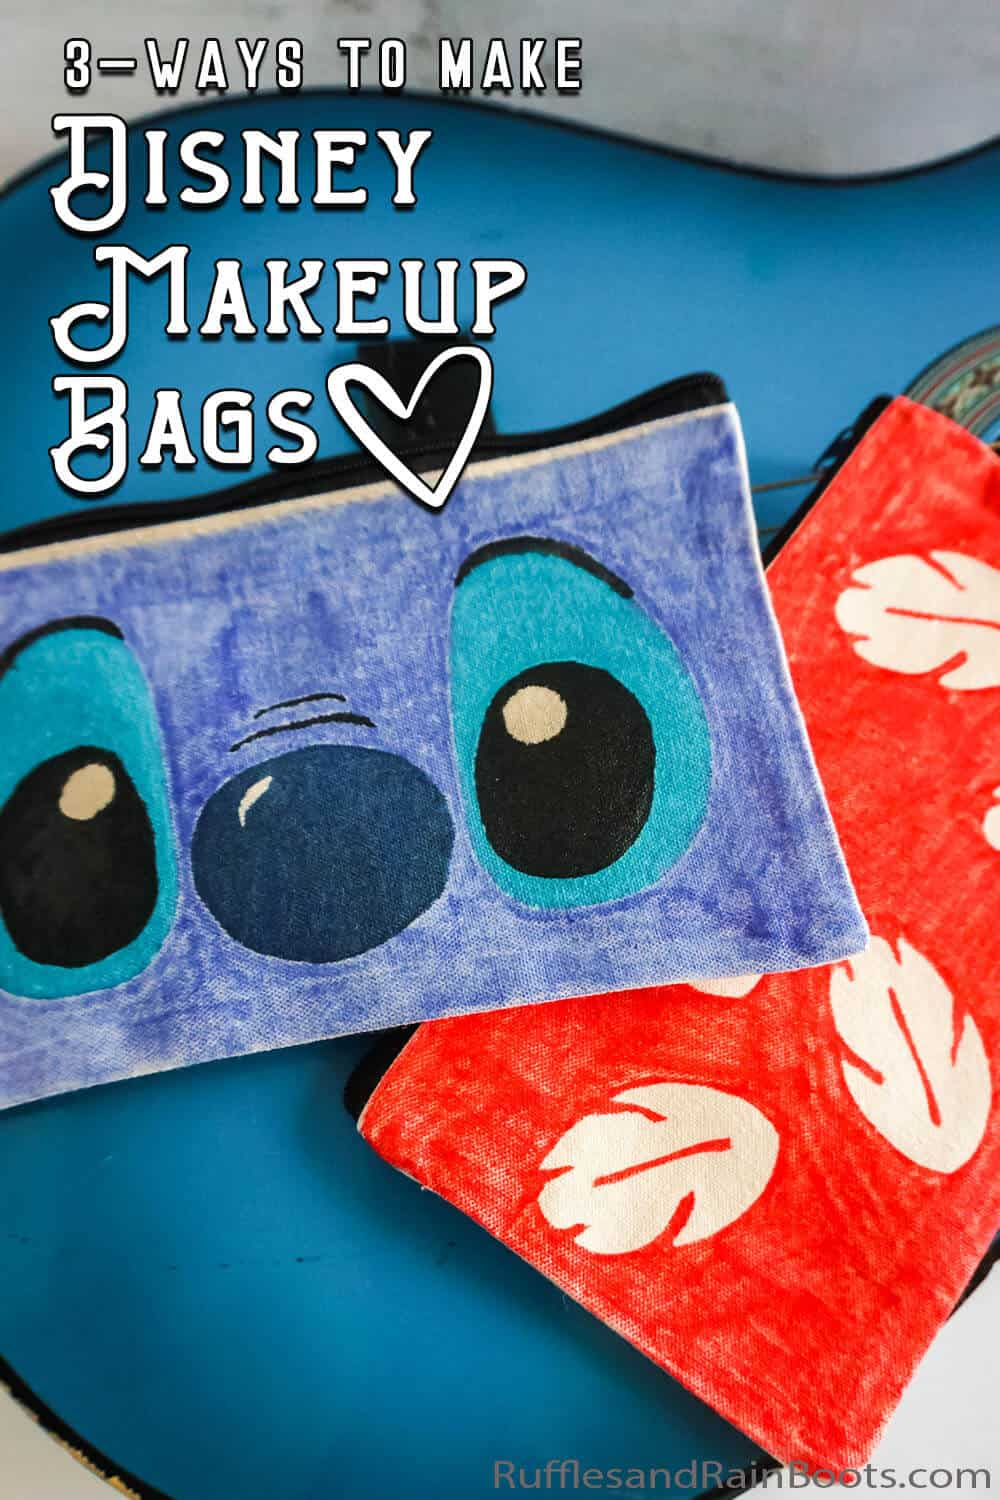 closeup of lilo and stitch cosmetic bags with text which reads 3-ways to make disney makeup bags